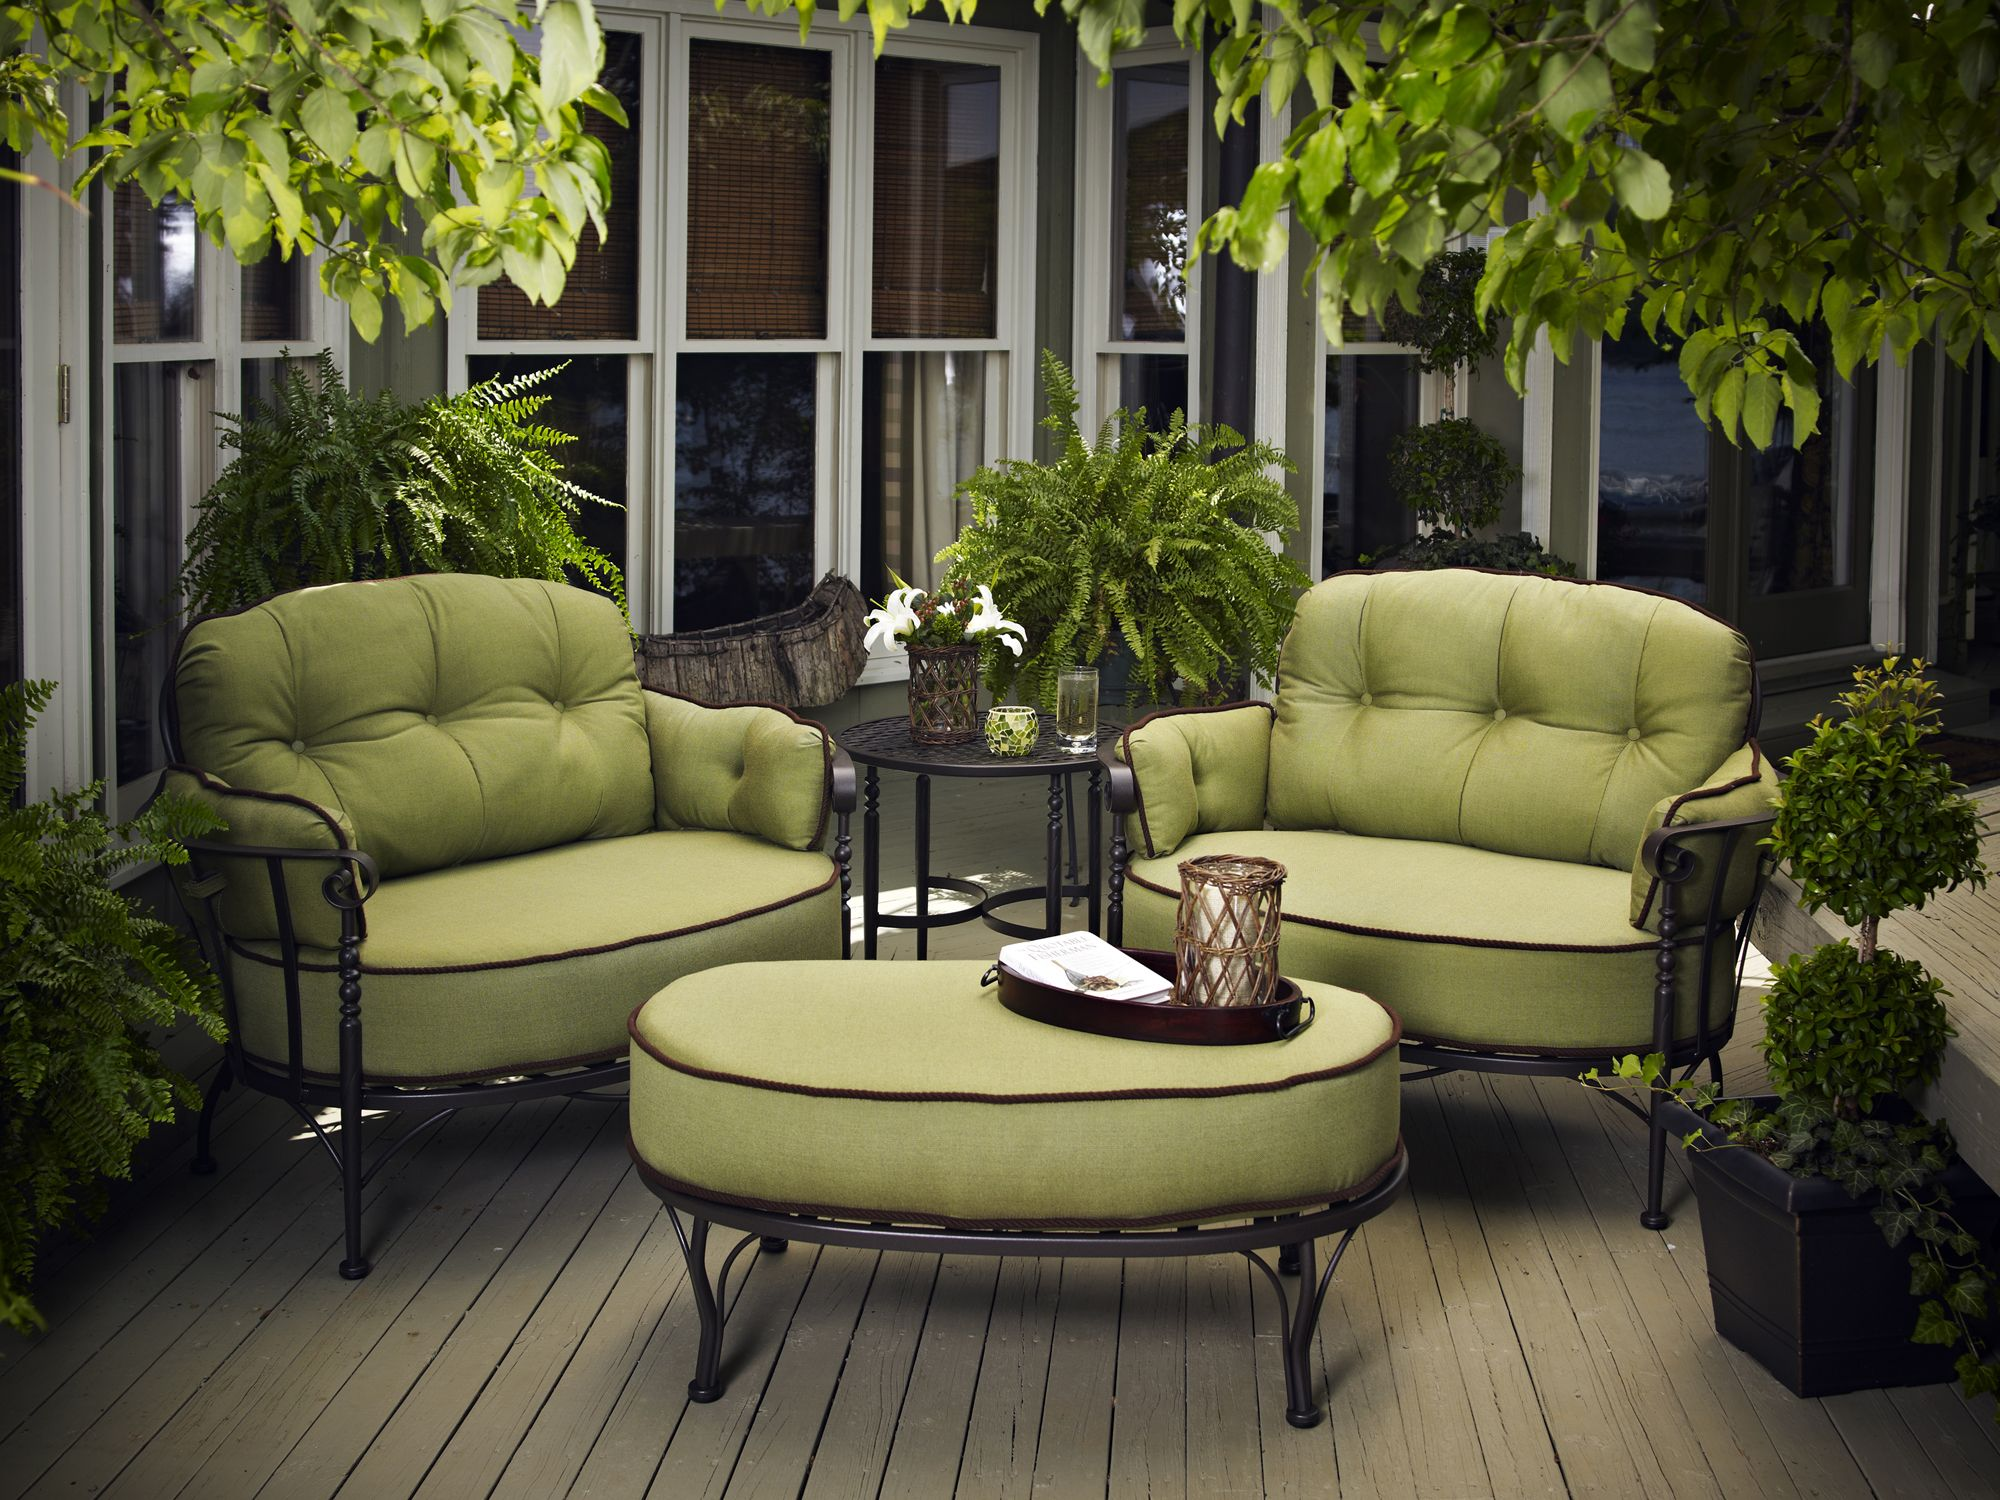 Meadowcraft Athens Wrought Iron Cuddle Lounge Set In 2019